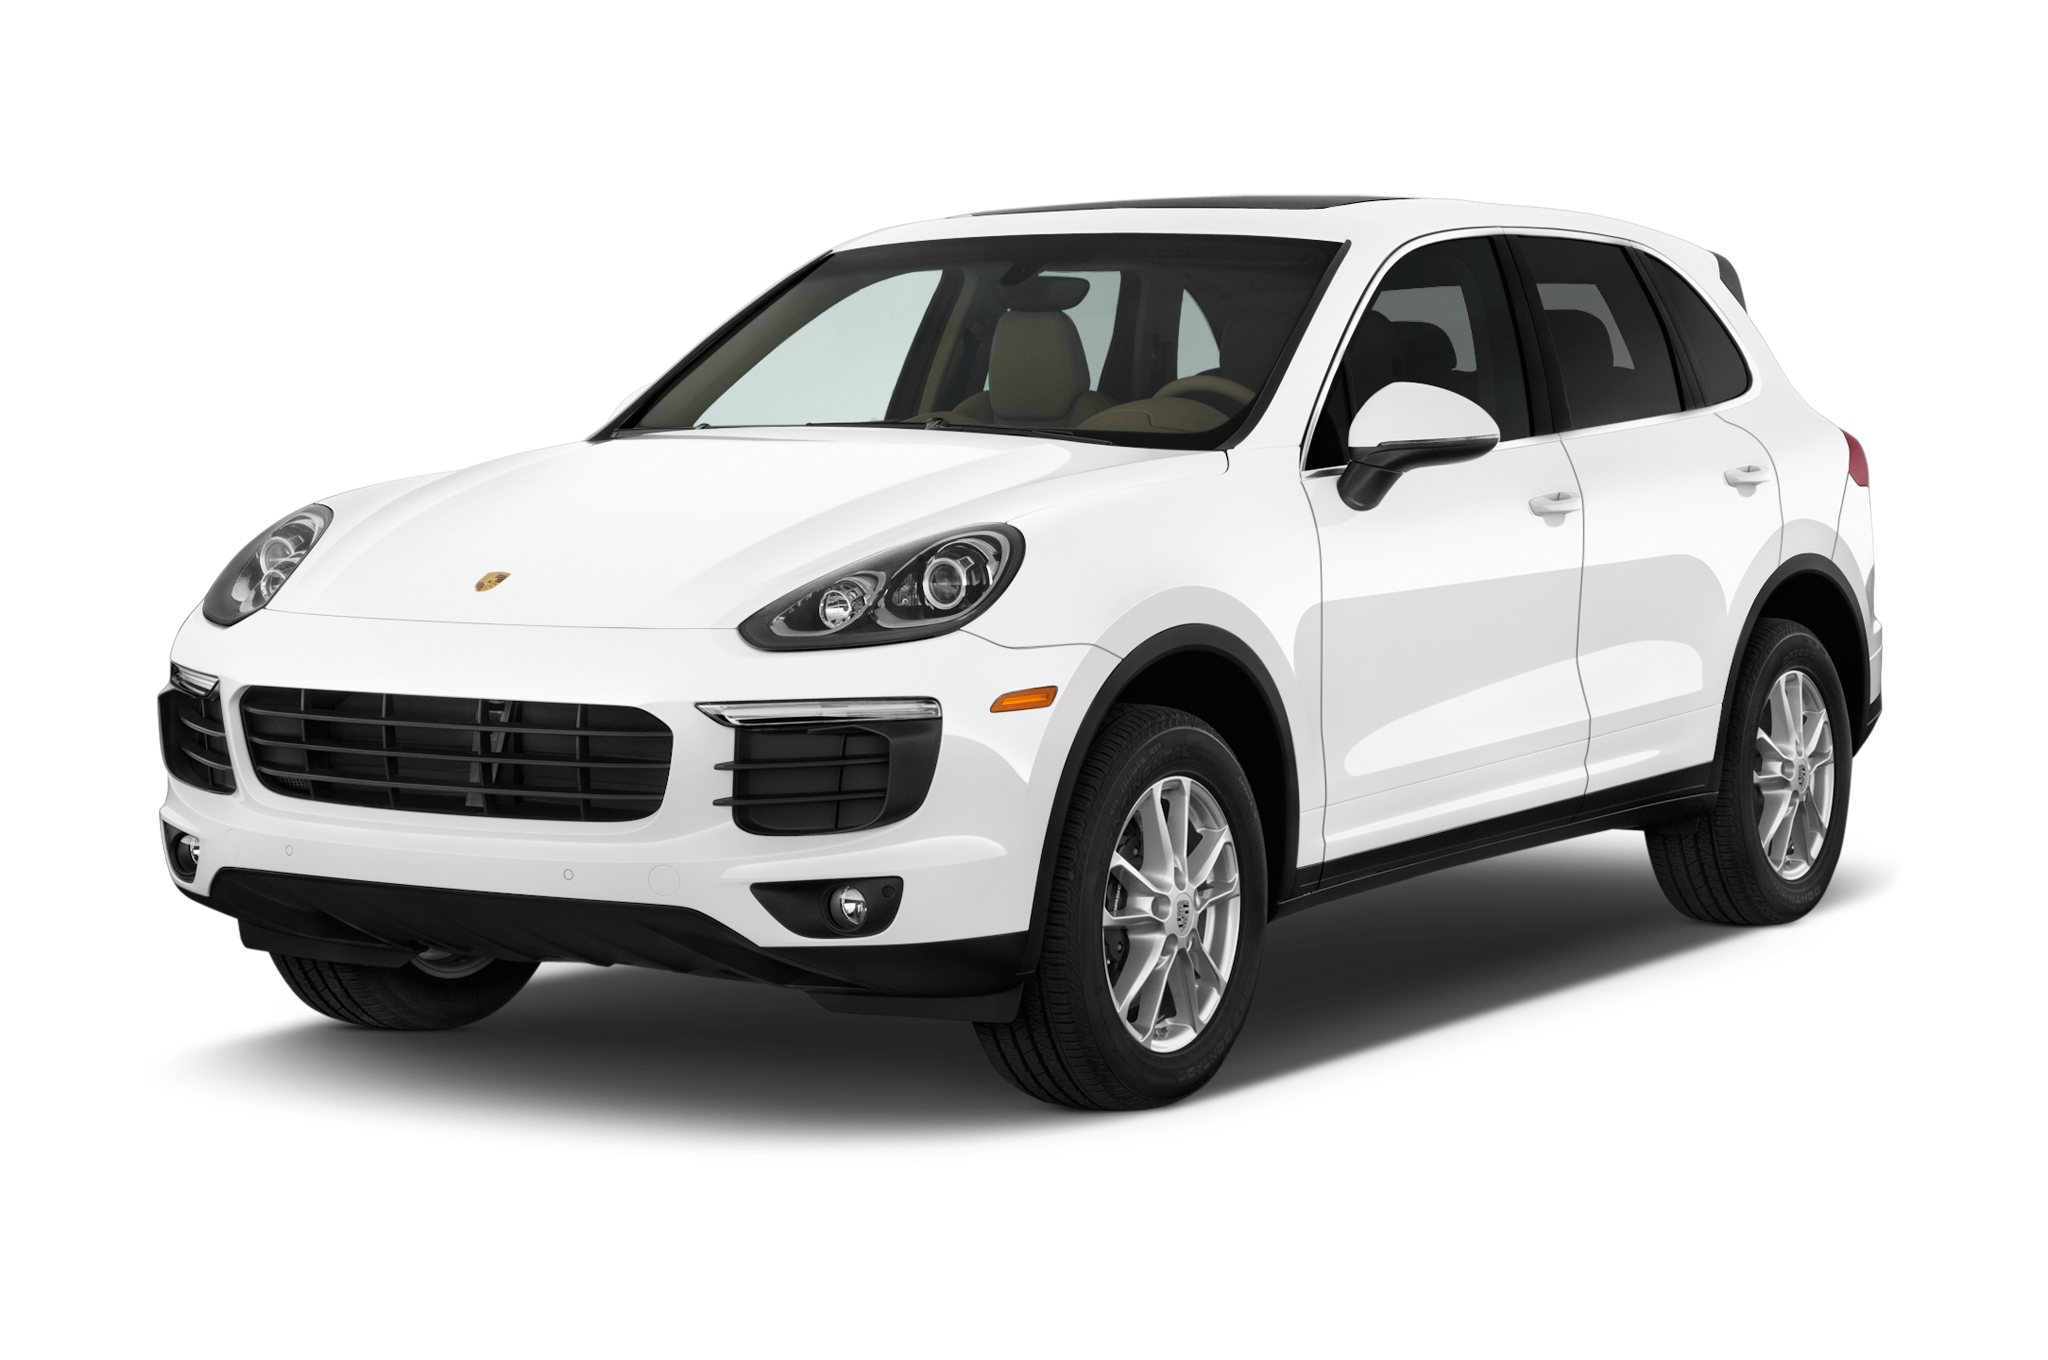 White Suv PNG - 57813